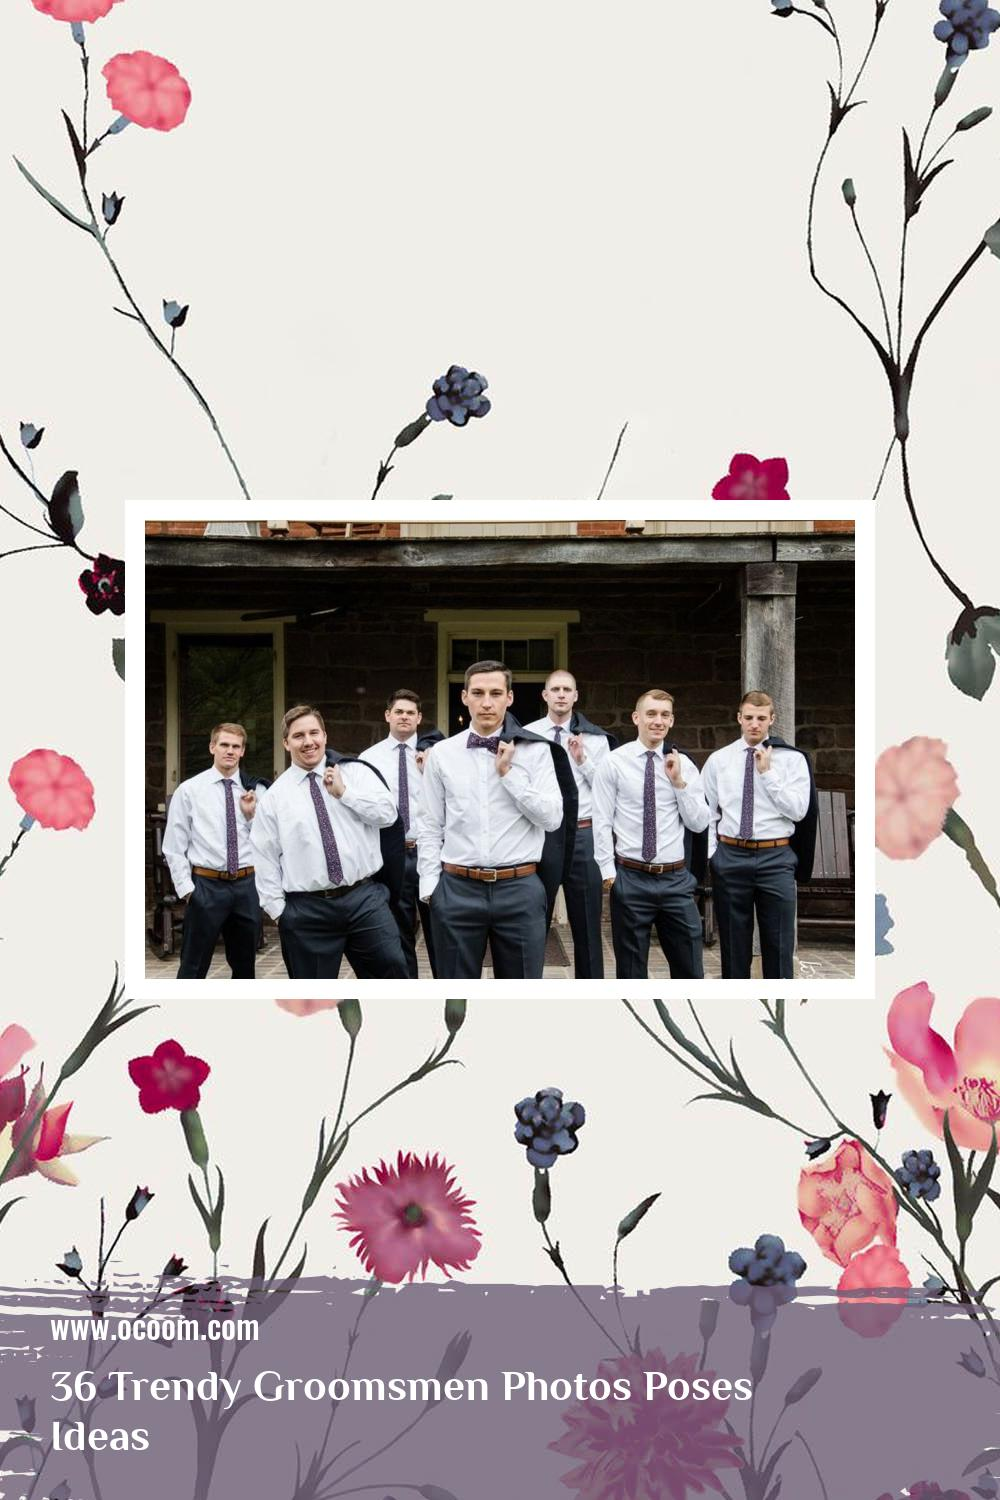 36 Trendy Groomsmen Photos Poses Ideas 26